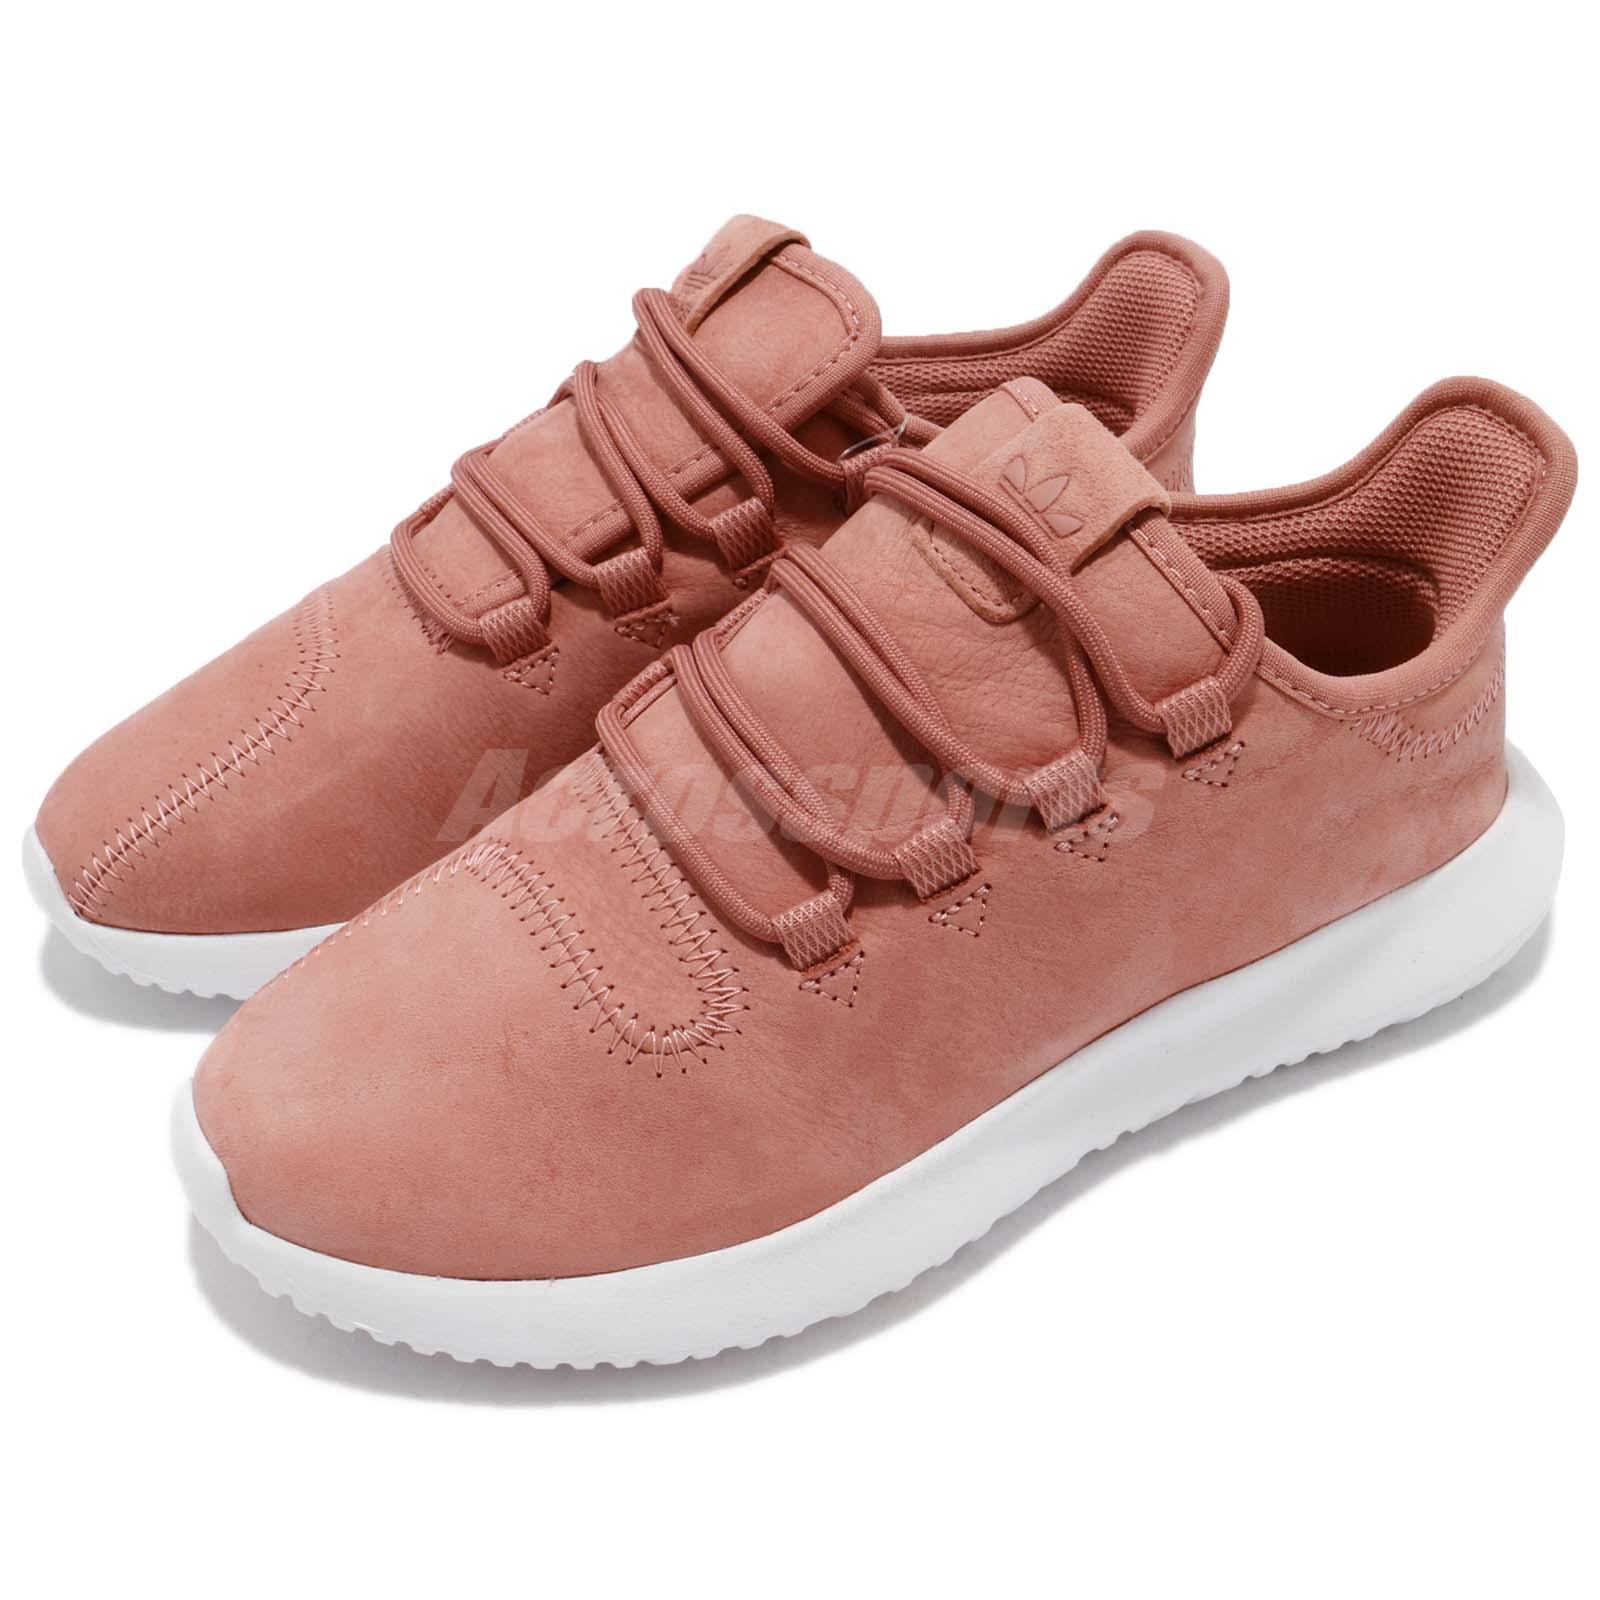 9503cc1554cc20 adidas Tubular Shadow W Pink White Women Running Shoes Sneakers DB0327